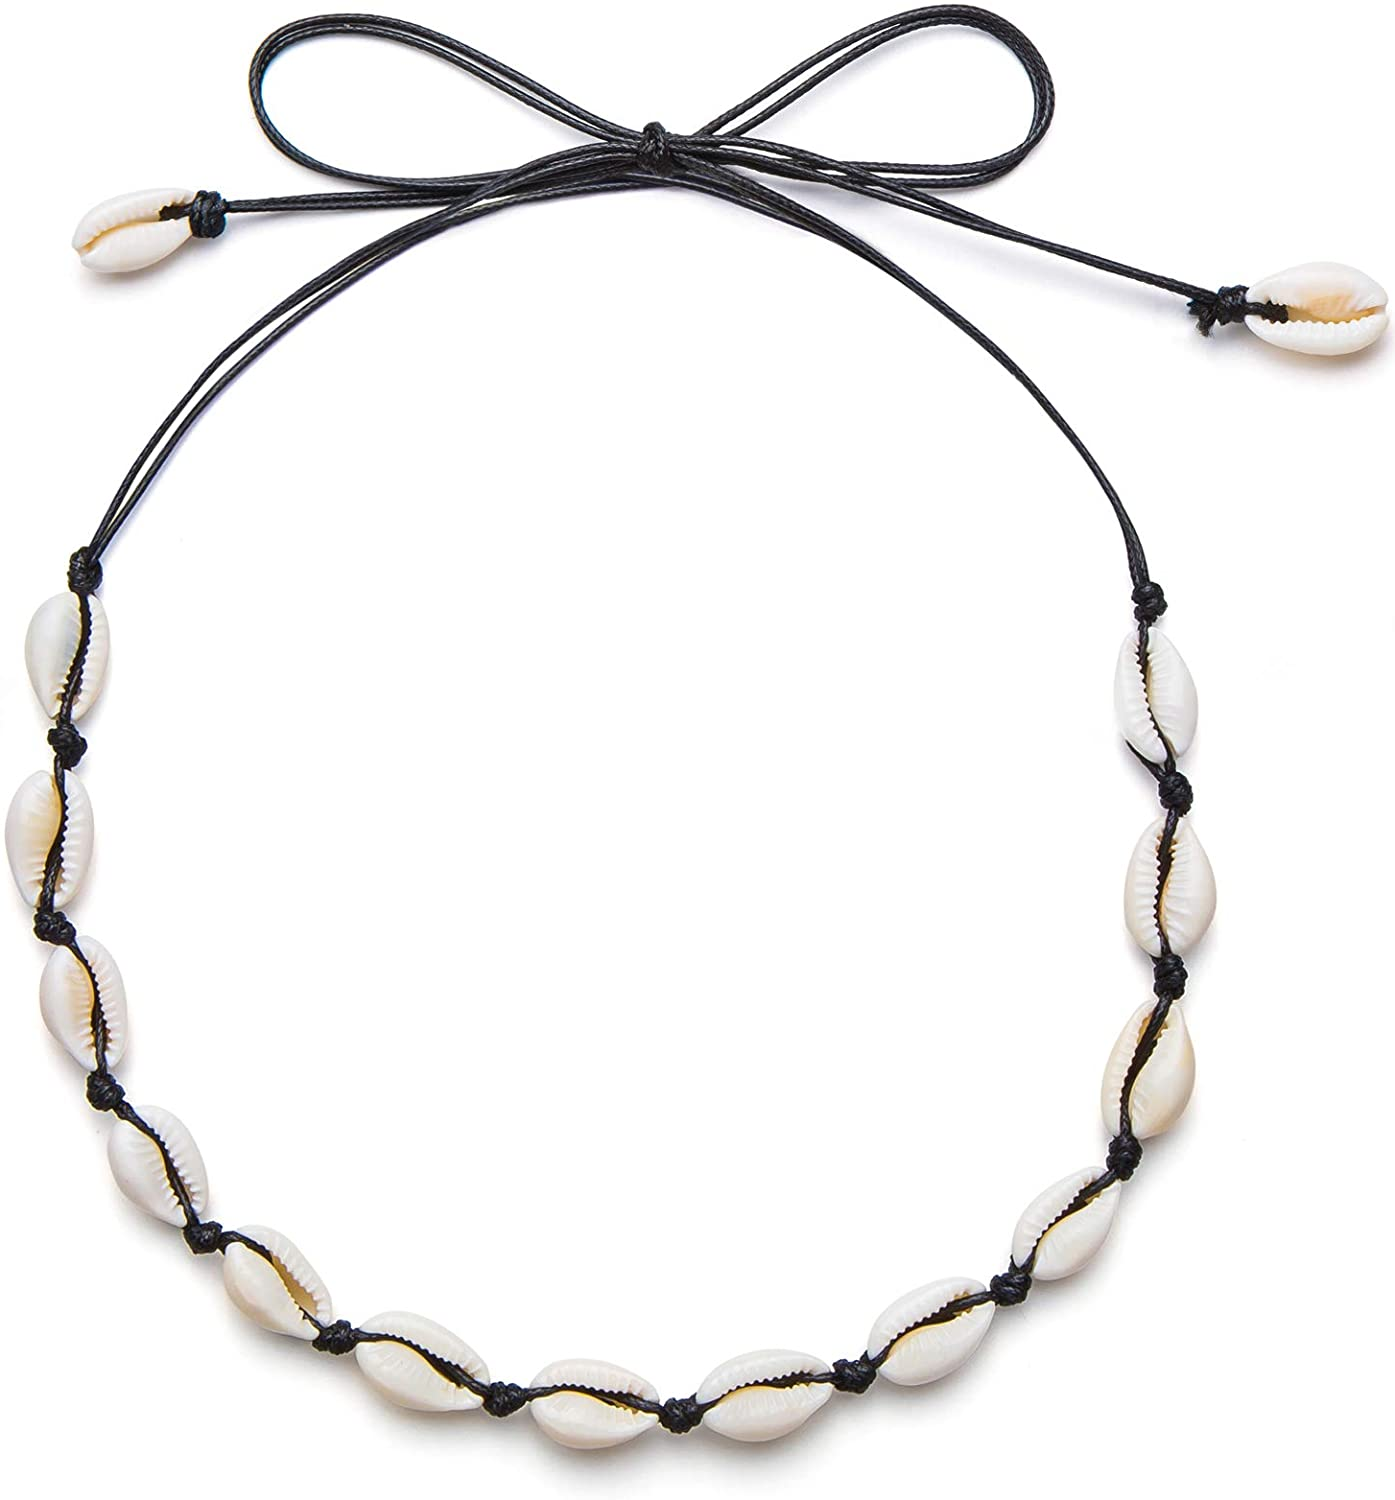 Qceasiy Seashell Necklace Choker for Women Summer Hawaiian Style Natural Shell Necklace